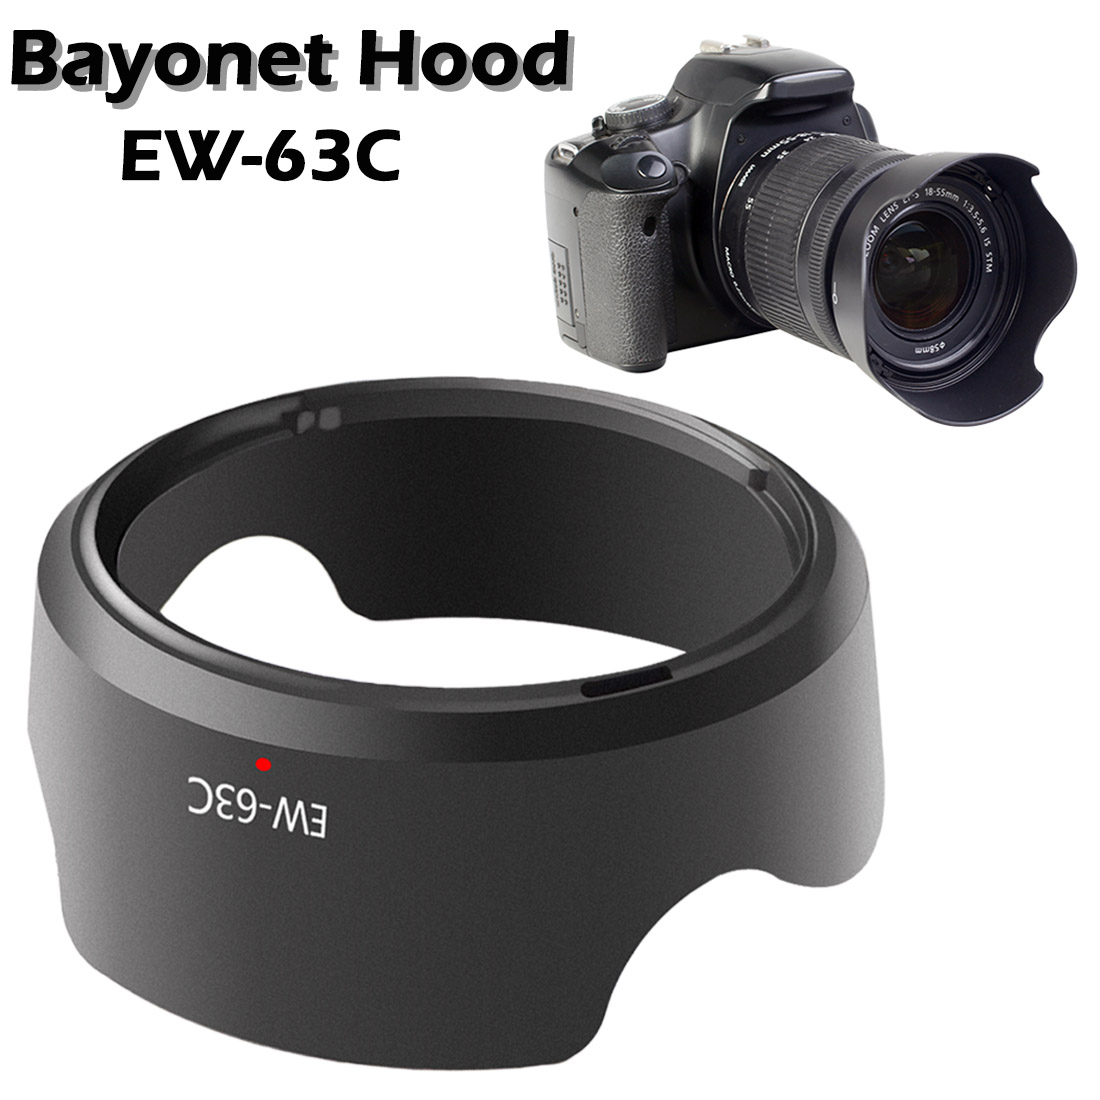 Universal <font><b>EW</b></font>-<font><b>63C</b></font> Camera Lens Hood for Canon EF-S 18-55mm f/3.5-5.6 IS 58mm Screw-in Tulip Flower Filter Thread Camera Lens Hood image